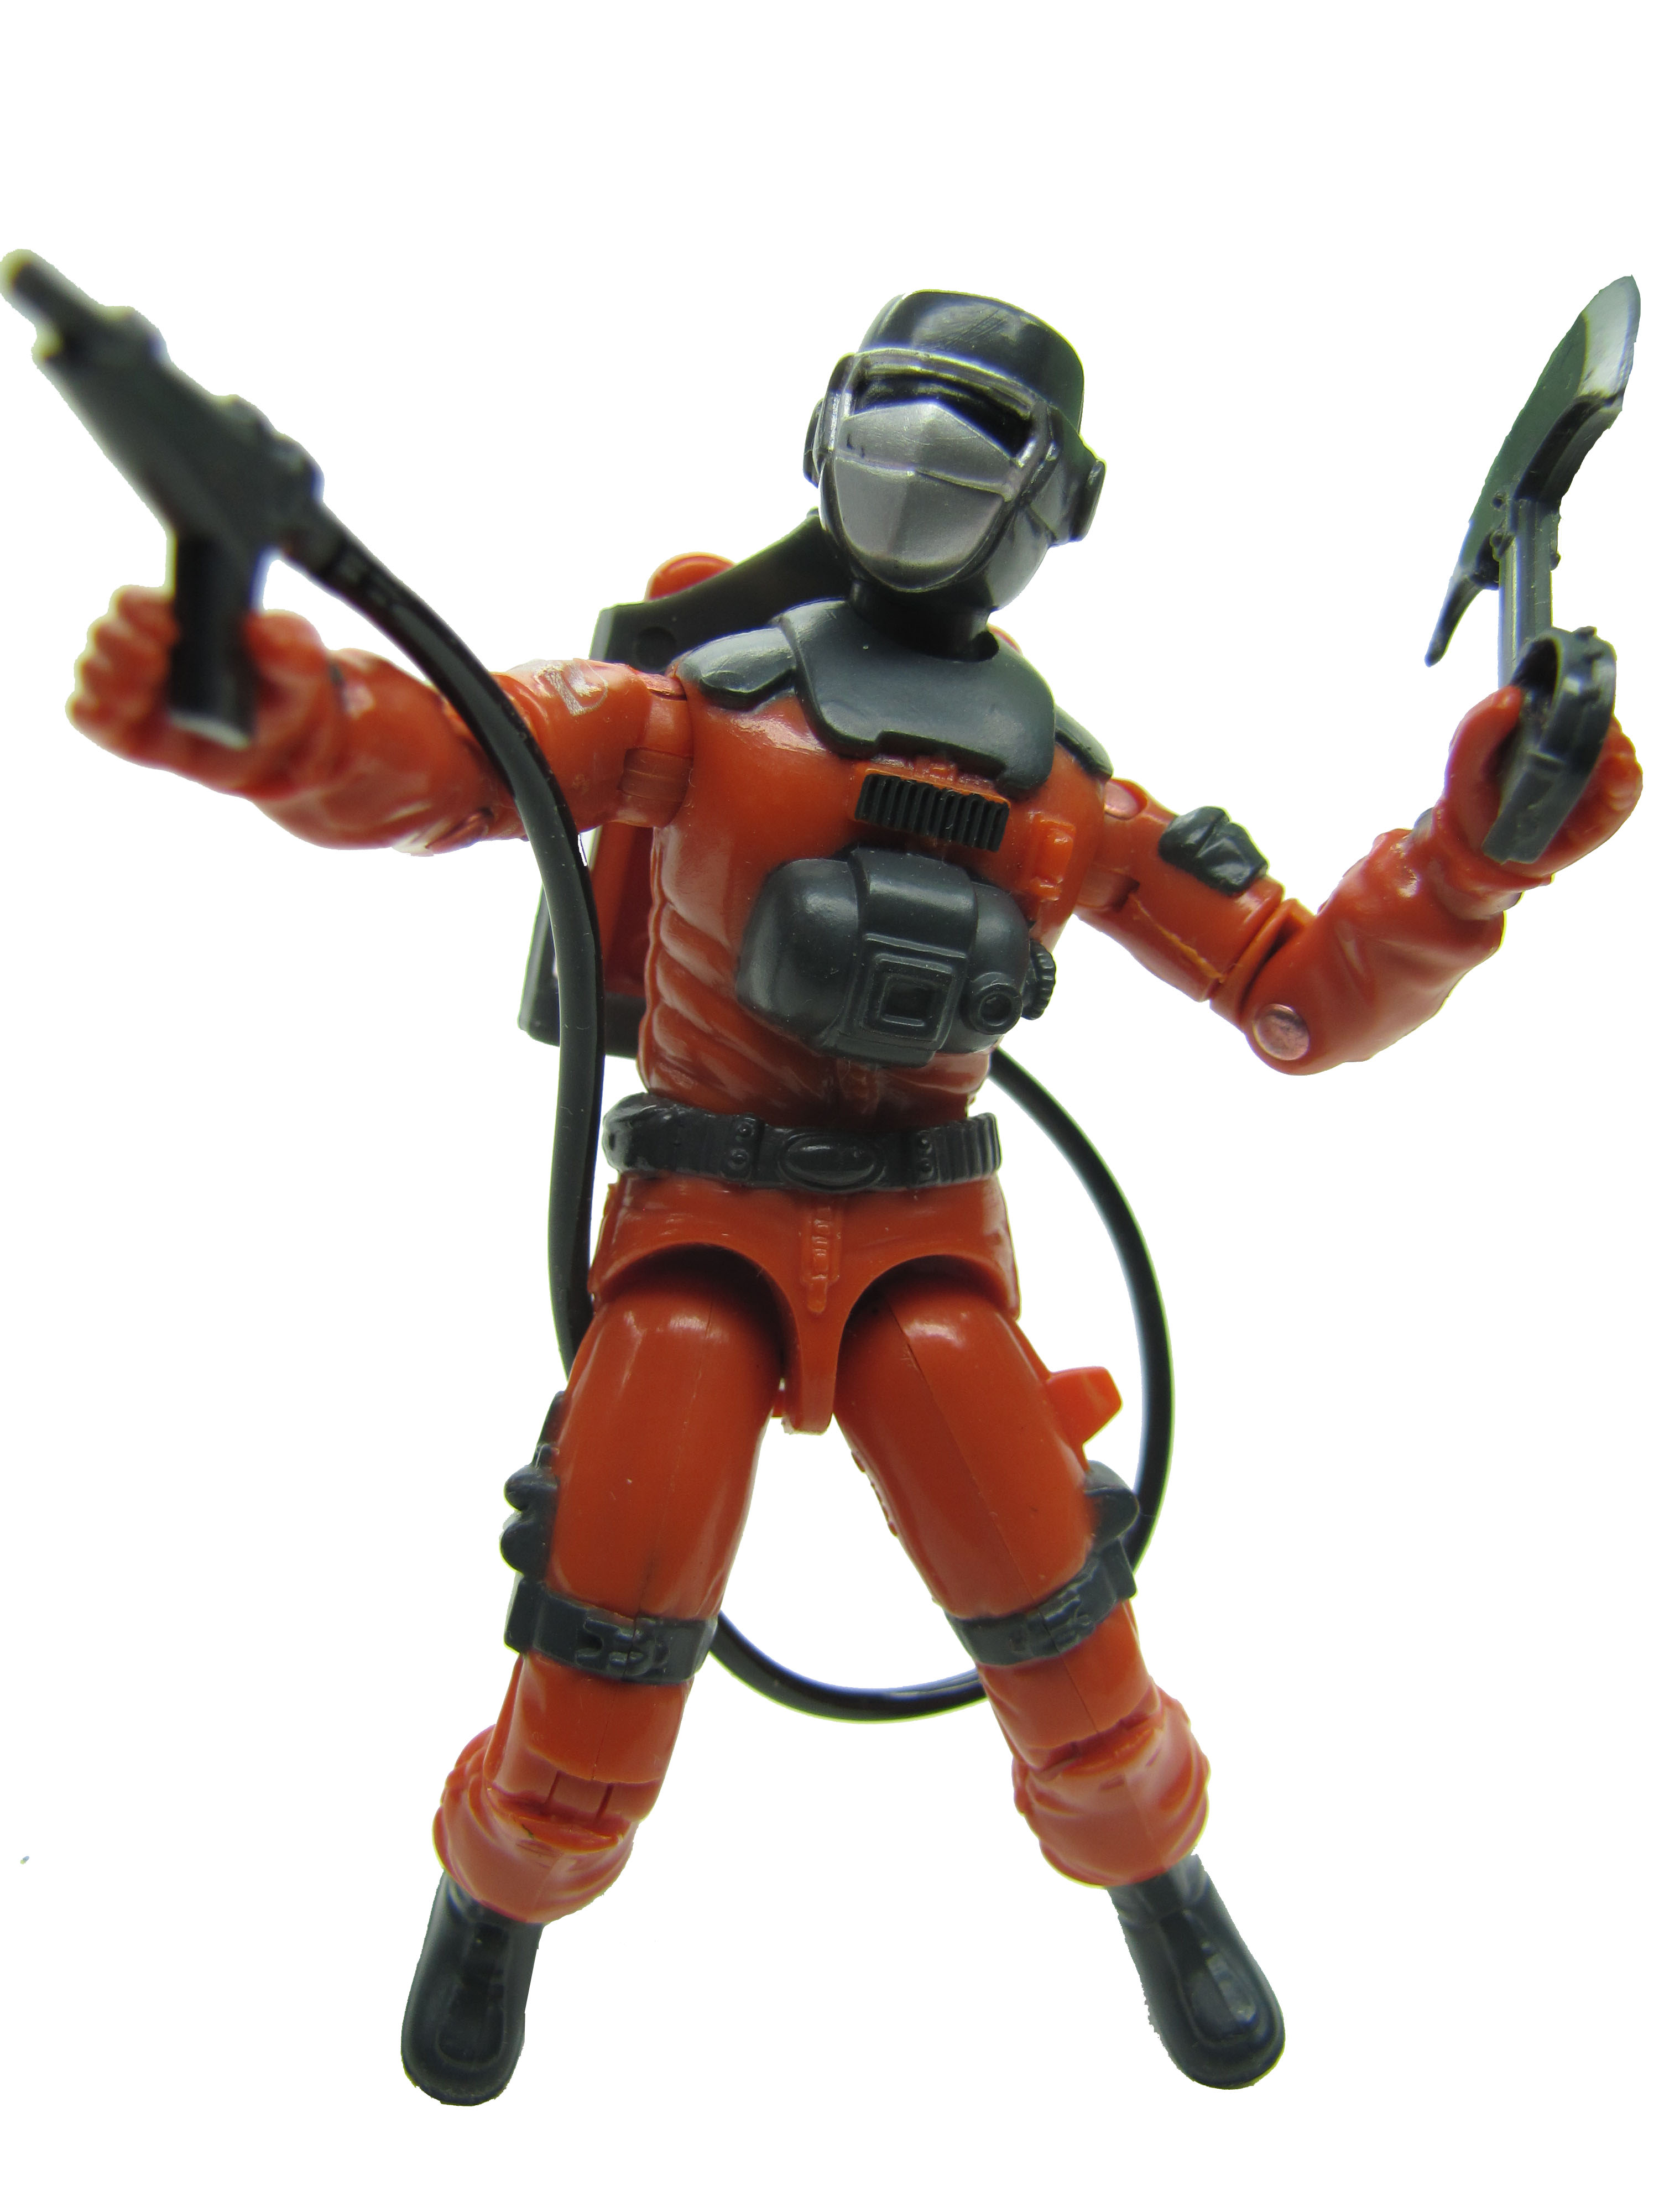 1985 GIJoe BARBECUE FIRE FIGHTER Complete